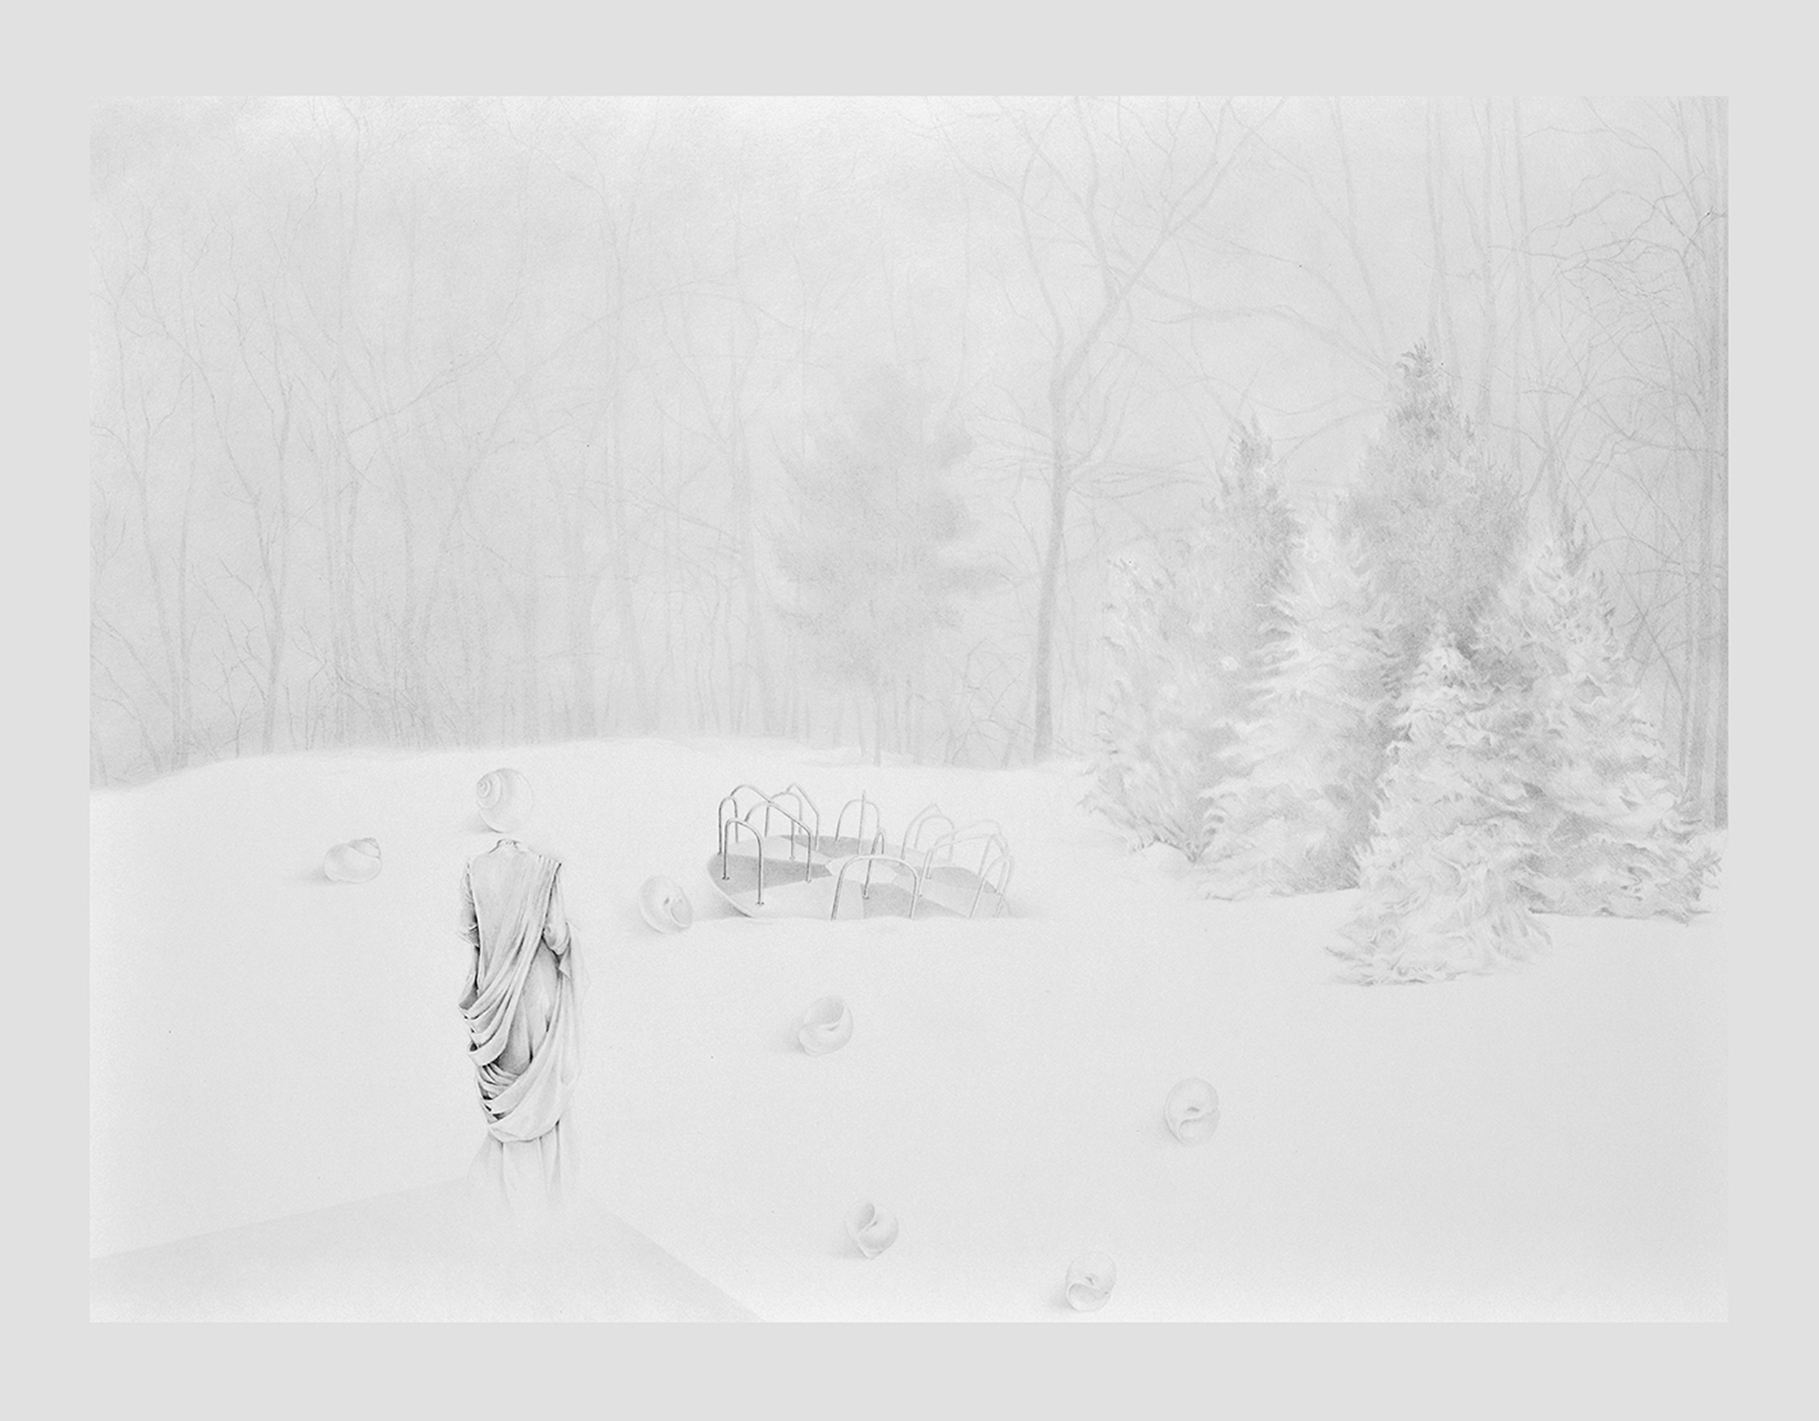 """Abandoned, 30""""X22"""", Graphite on Paper, 2018"""